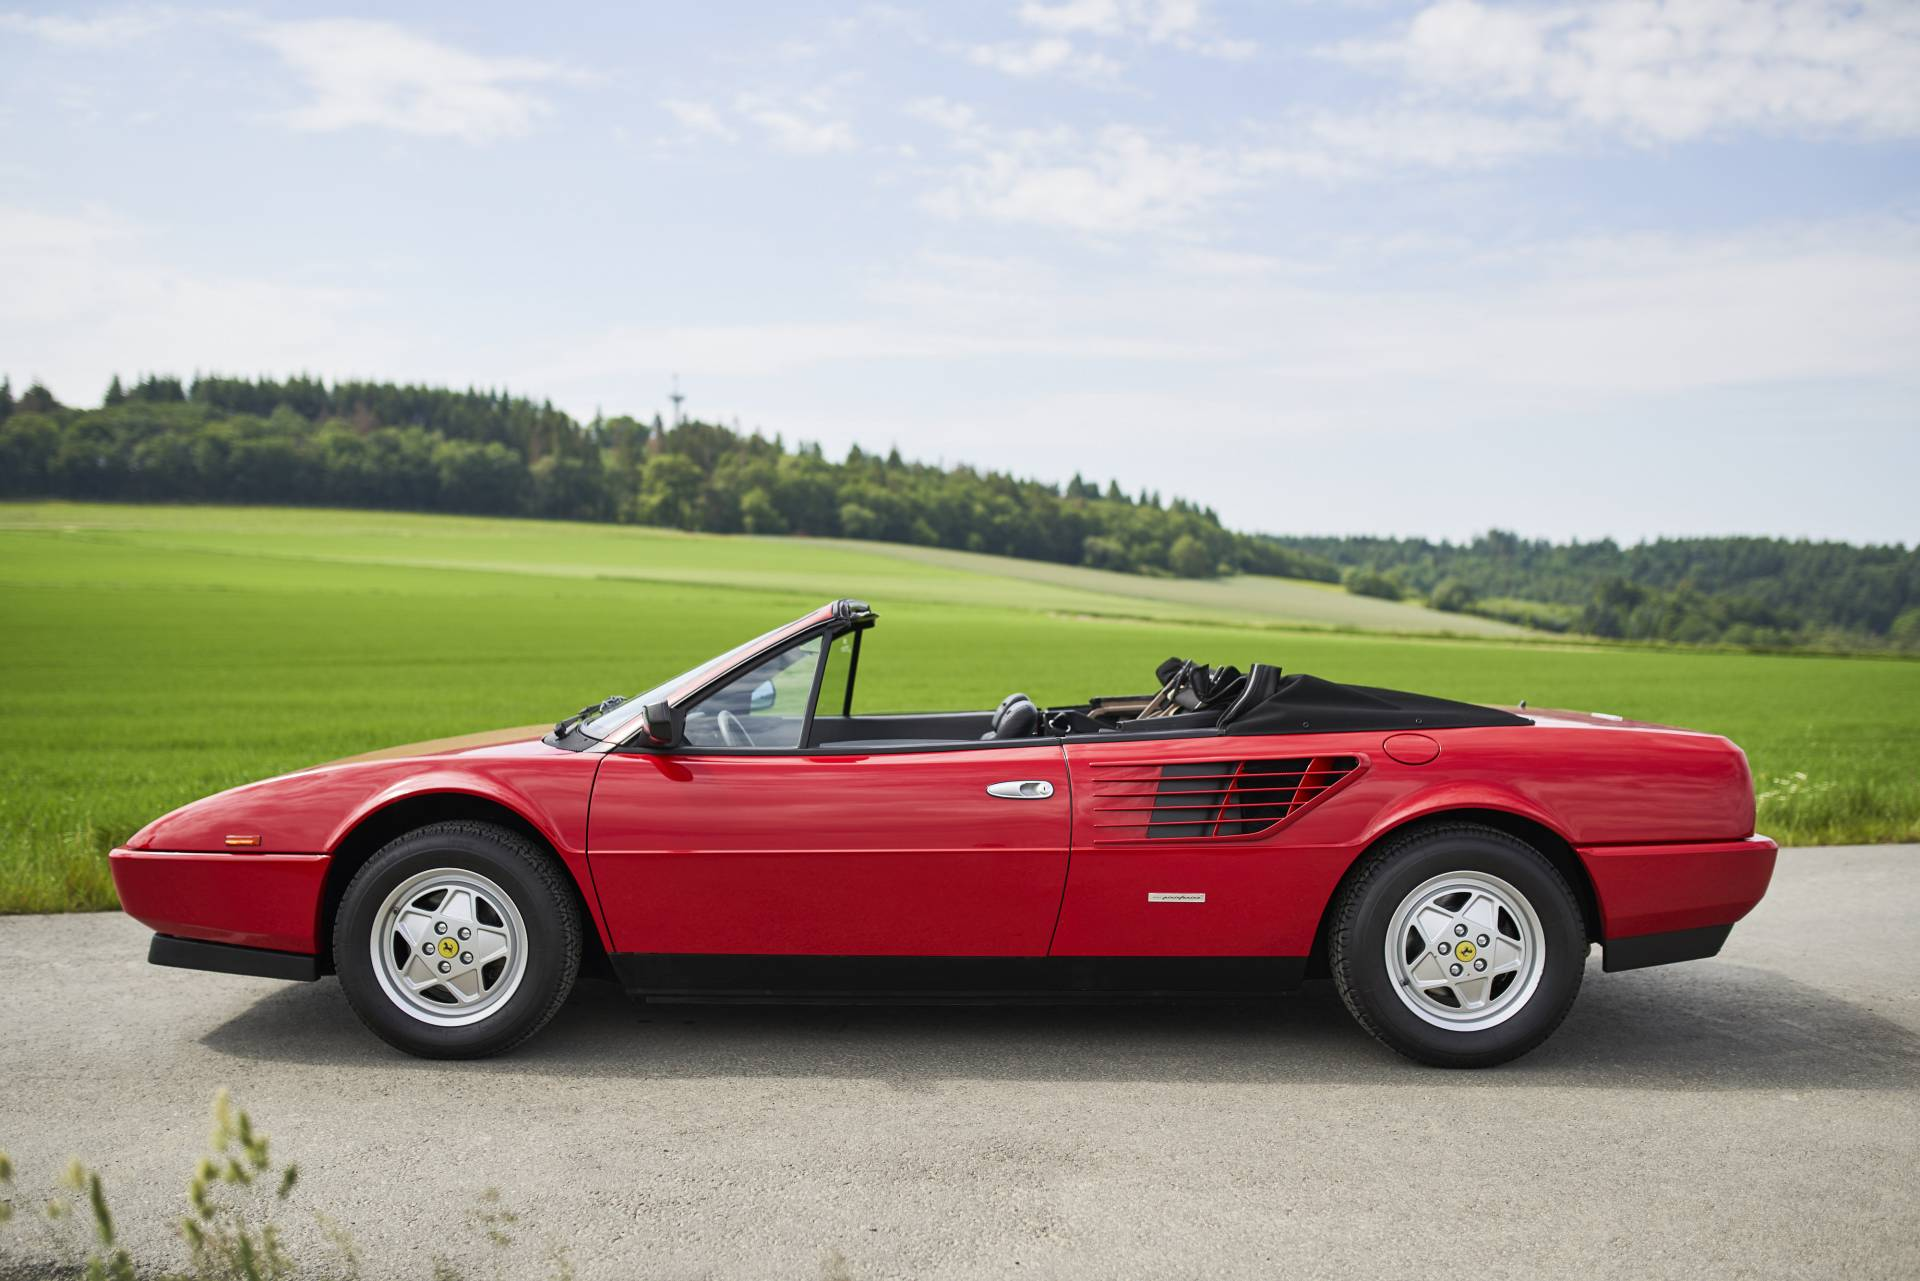 Ferrari Mondial 3.2 - Convetible in top condition